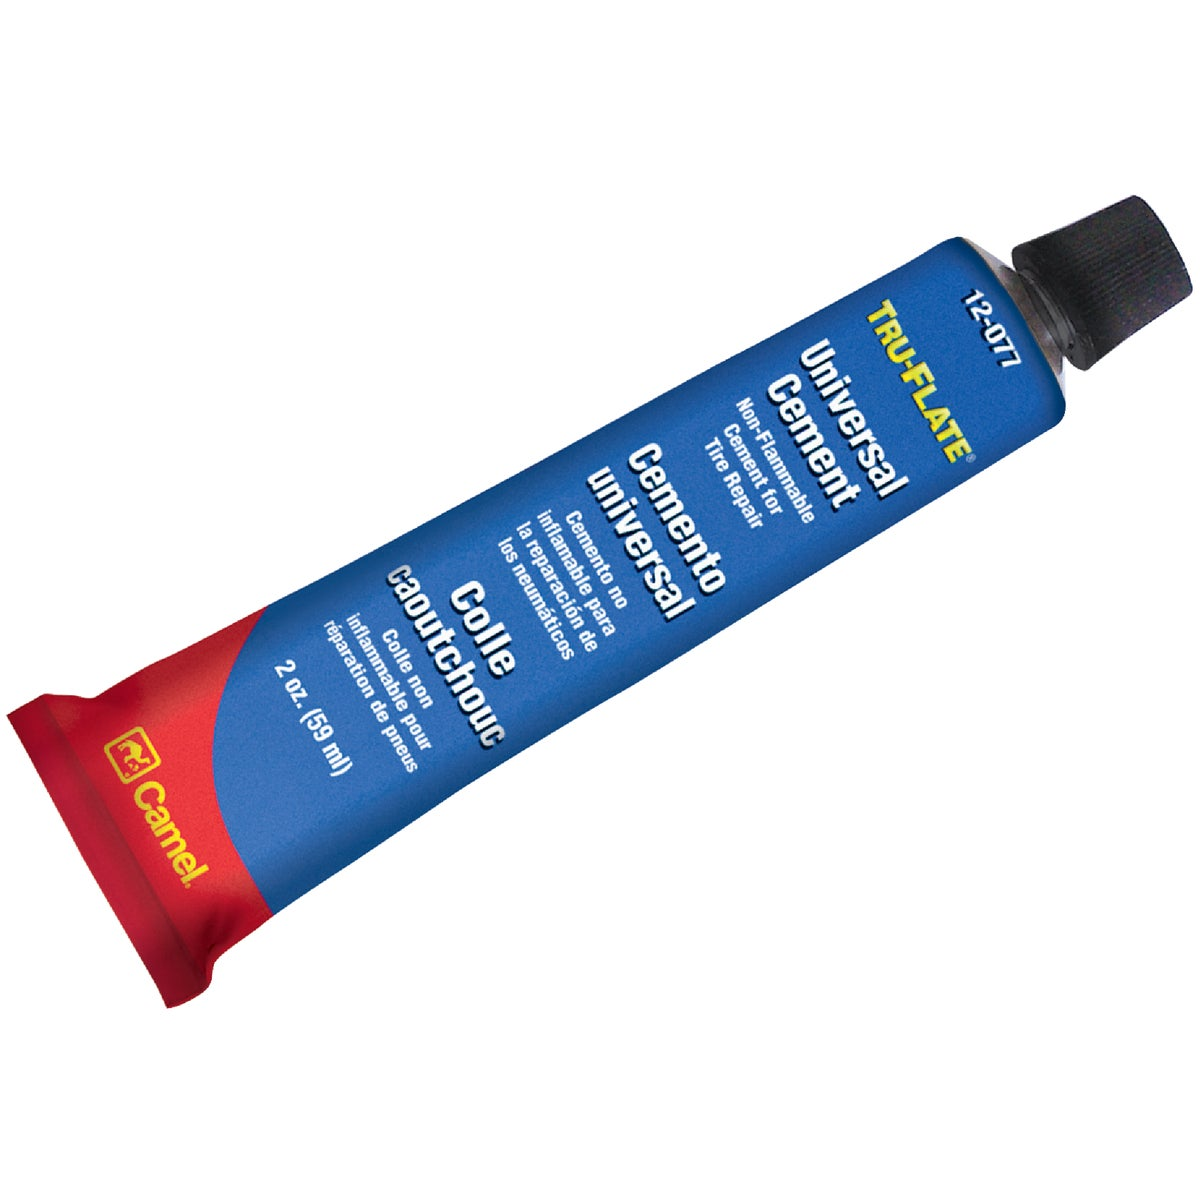 Rubber Patch Cement